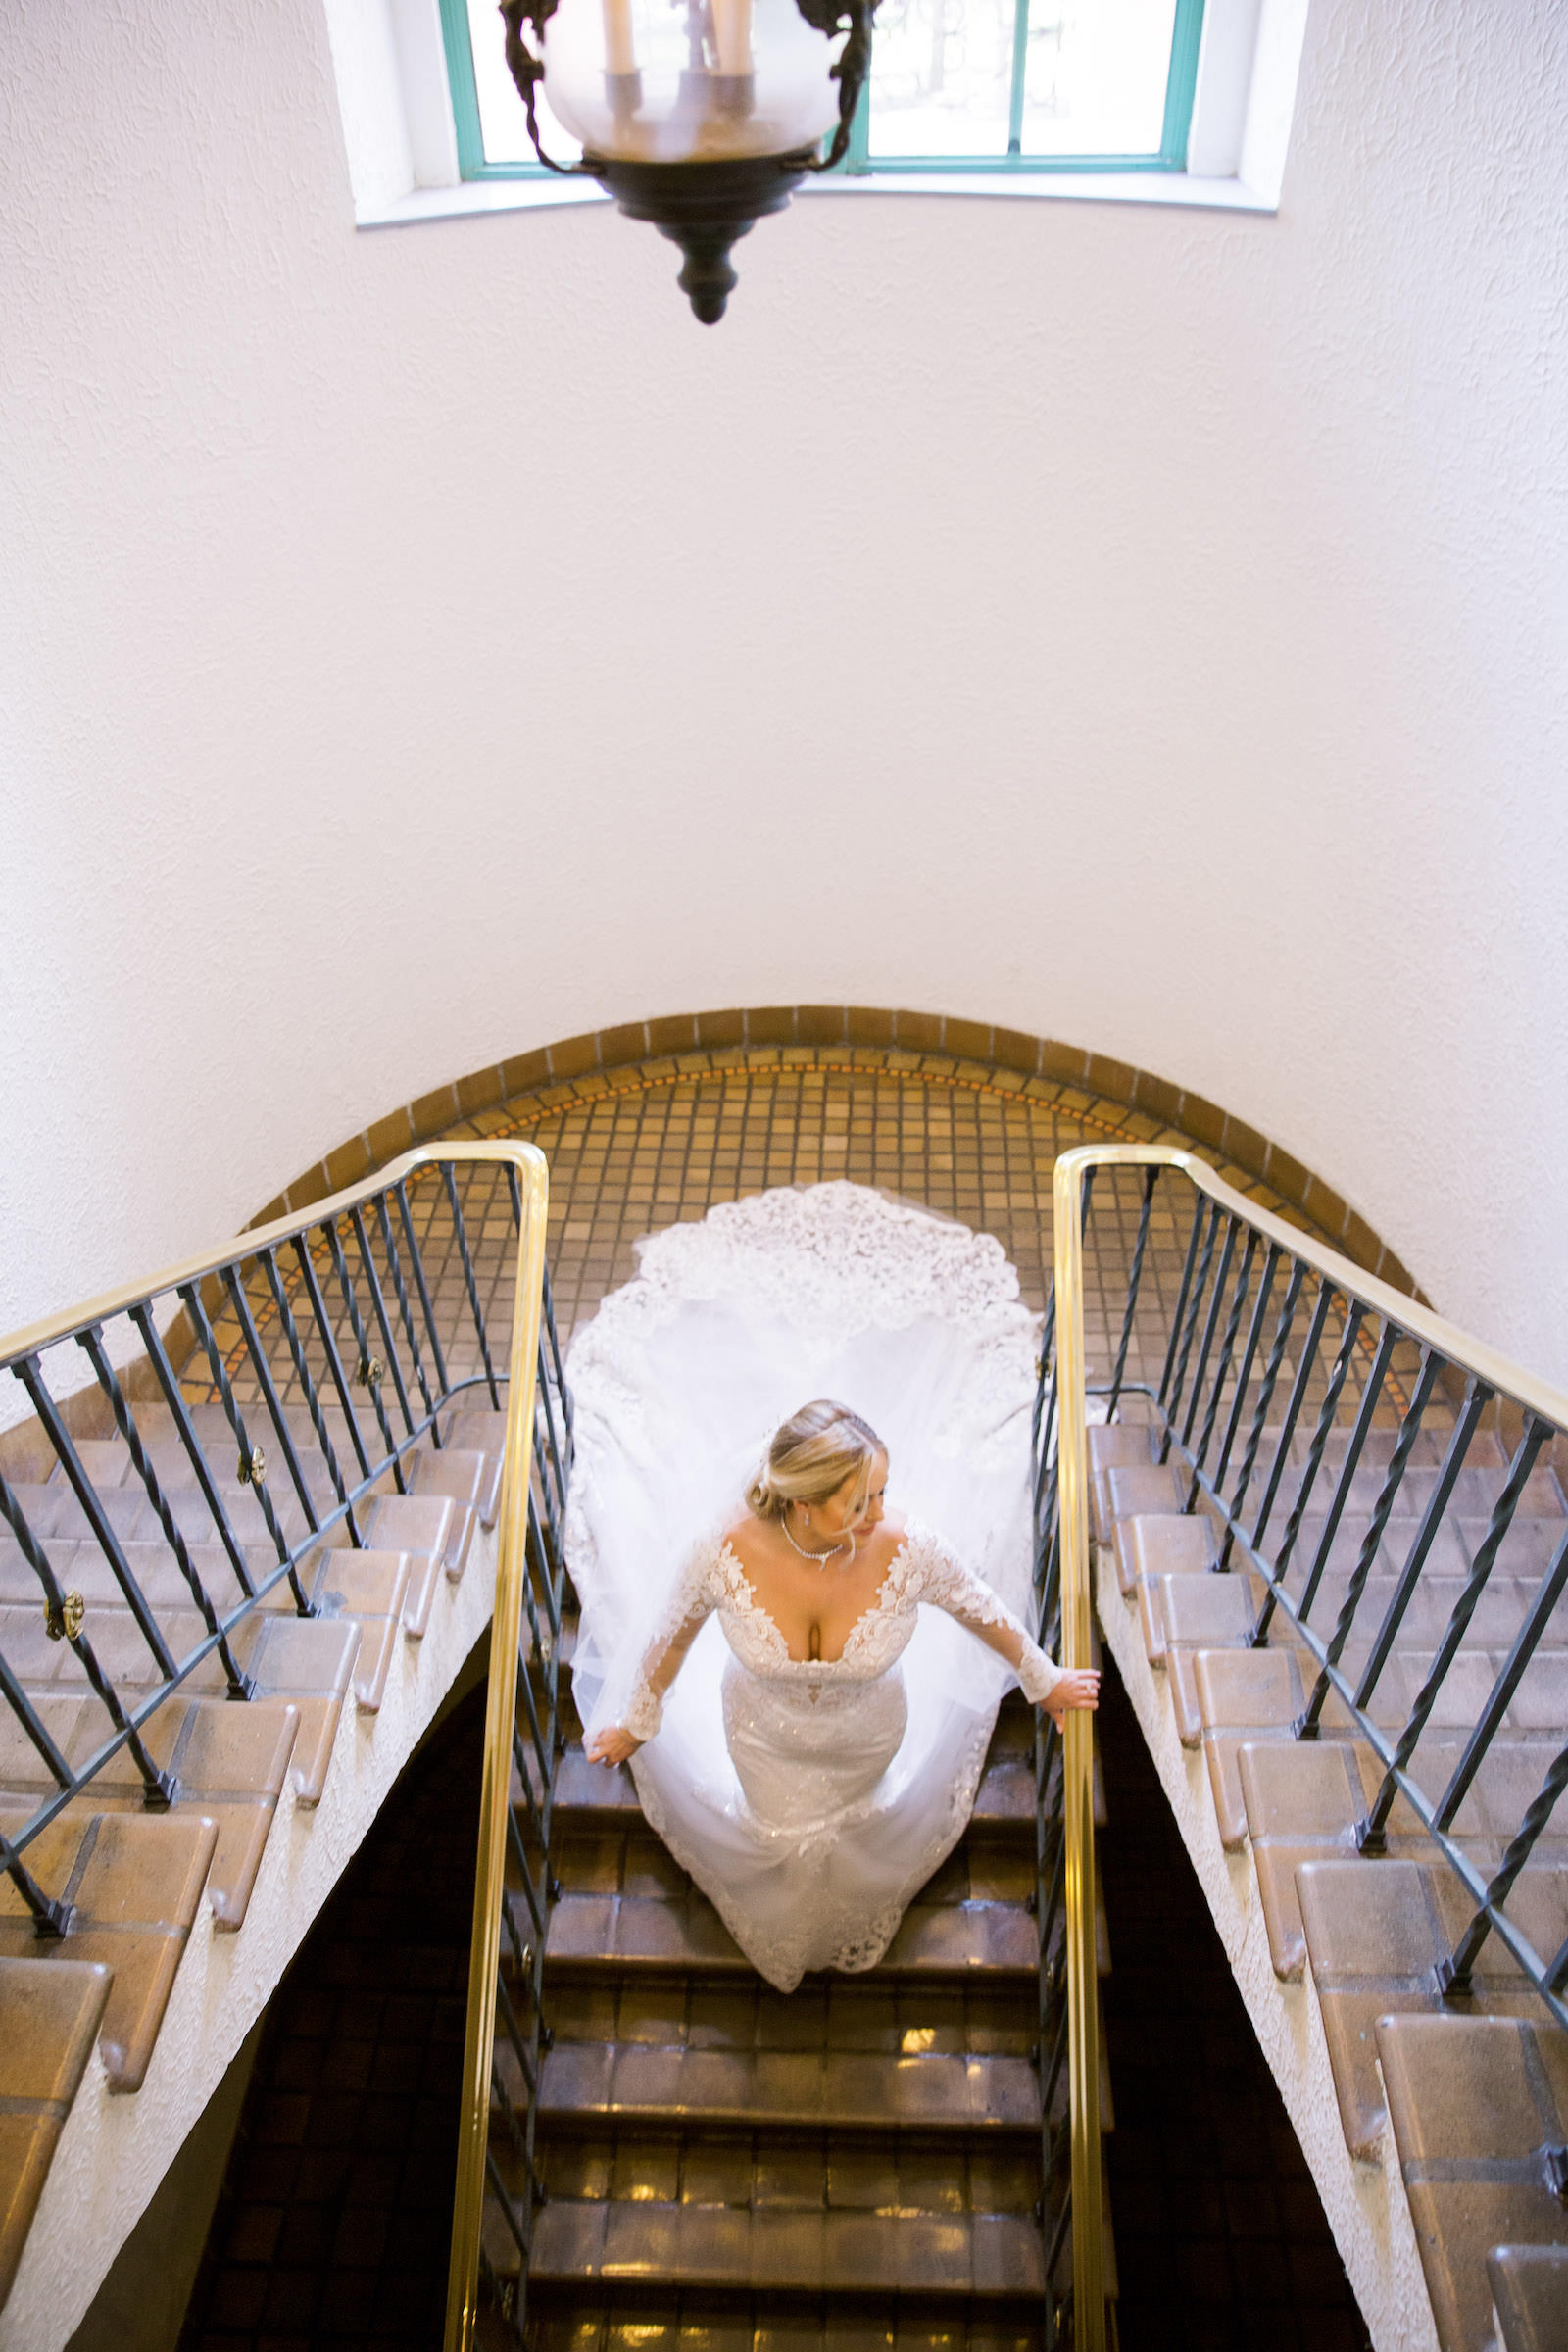 Creative Photo Looking Down on Bride on Staircase | The Vinoy